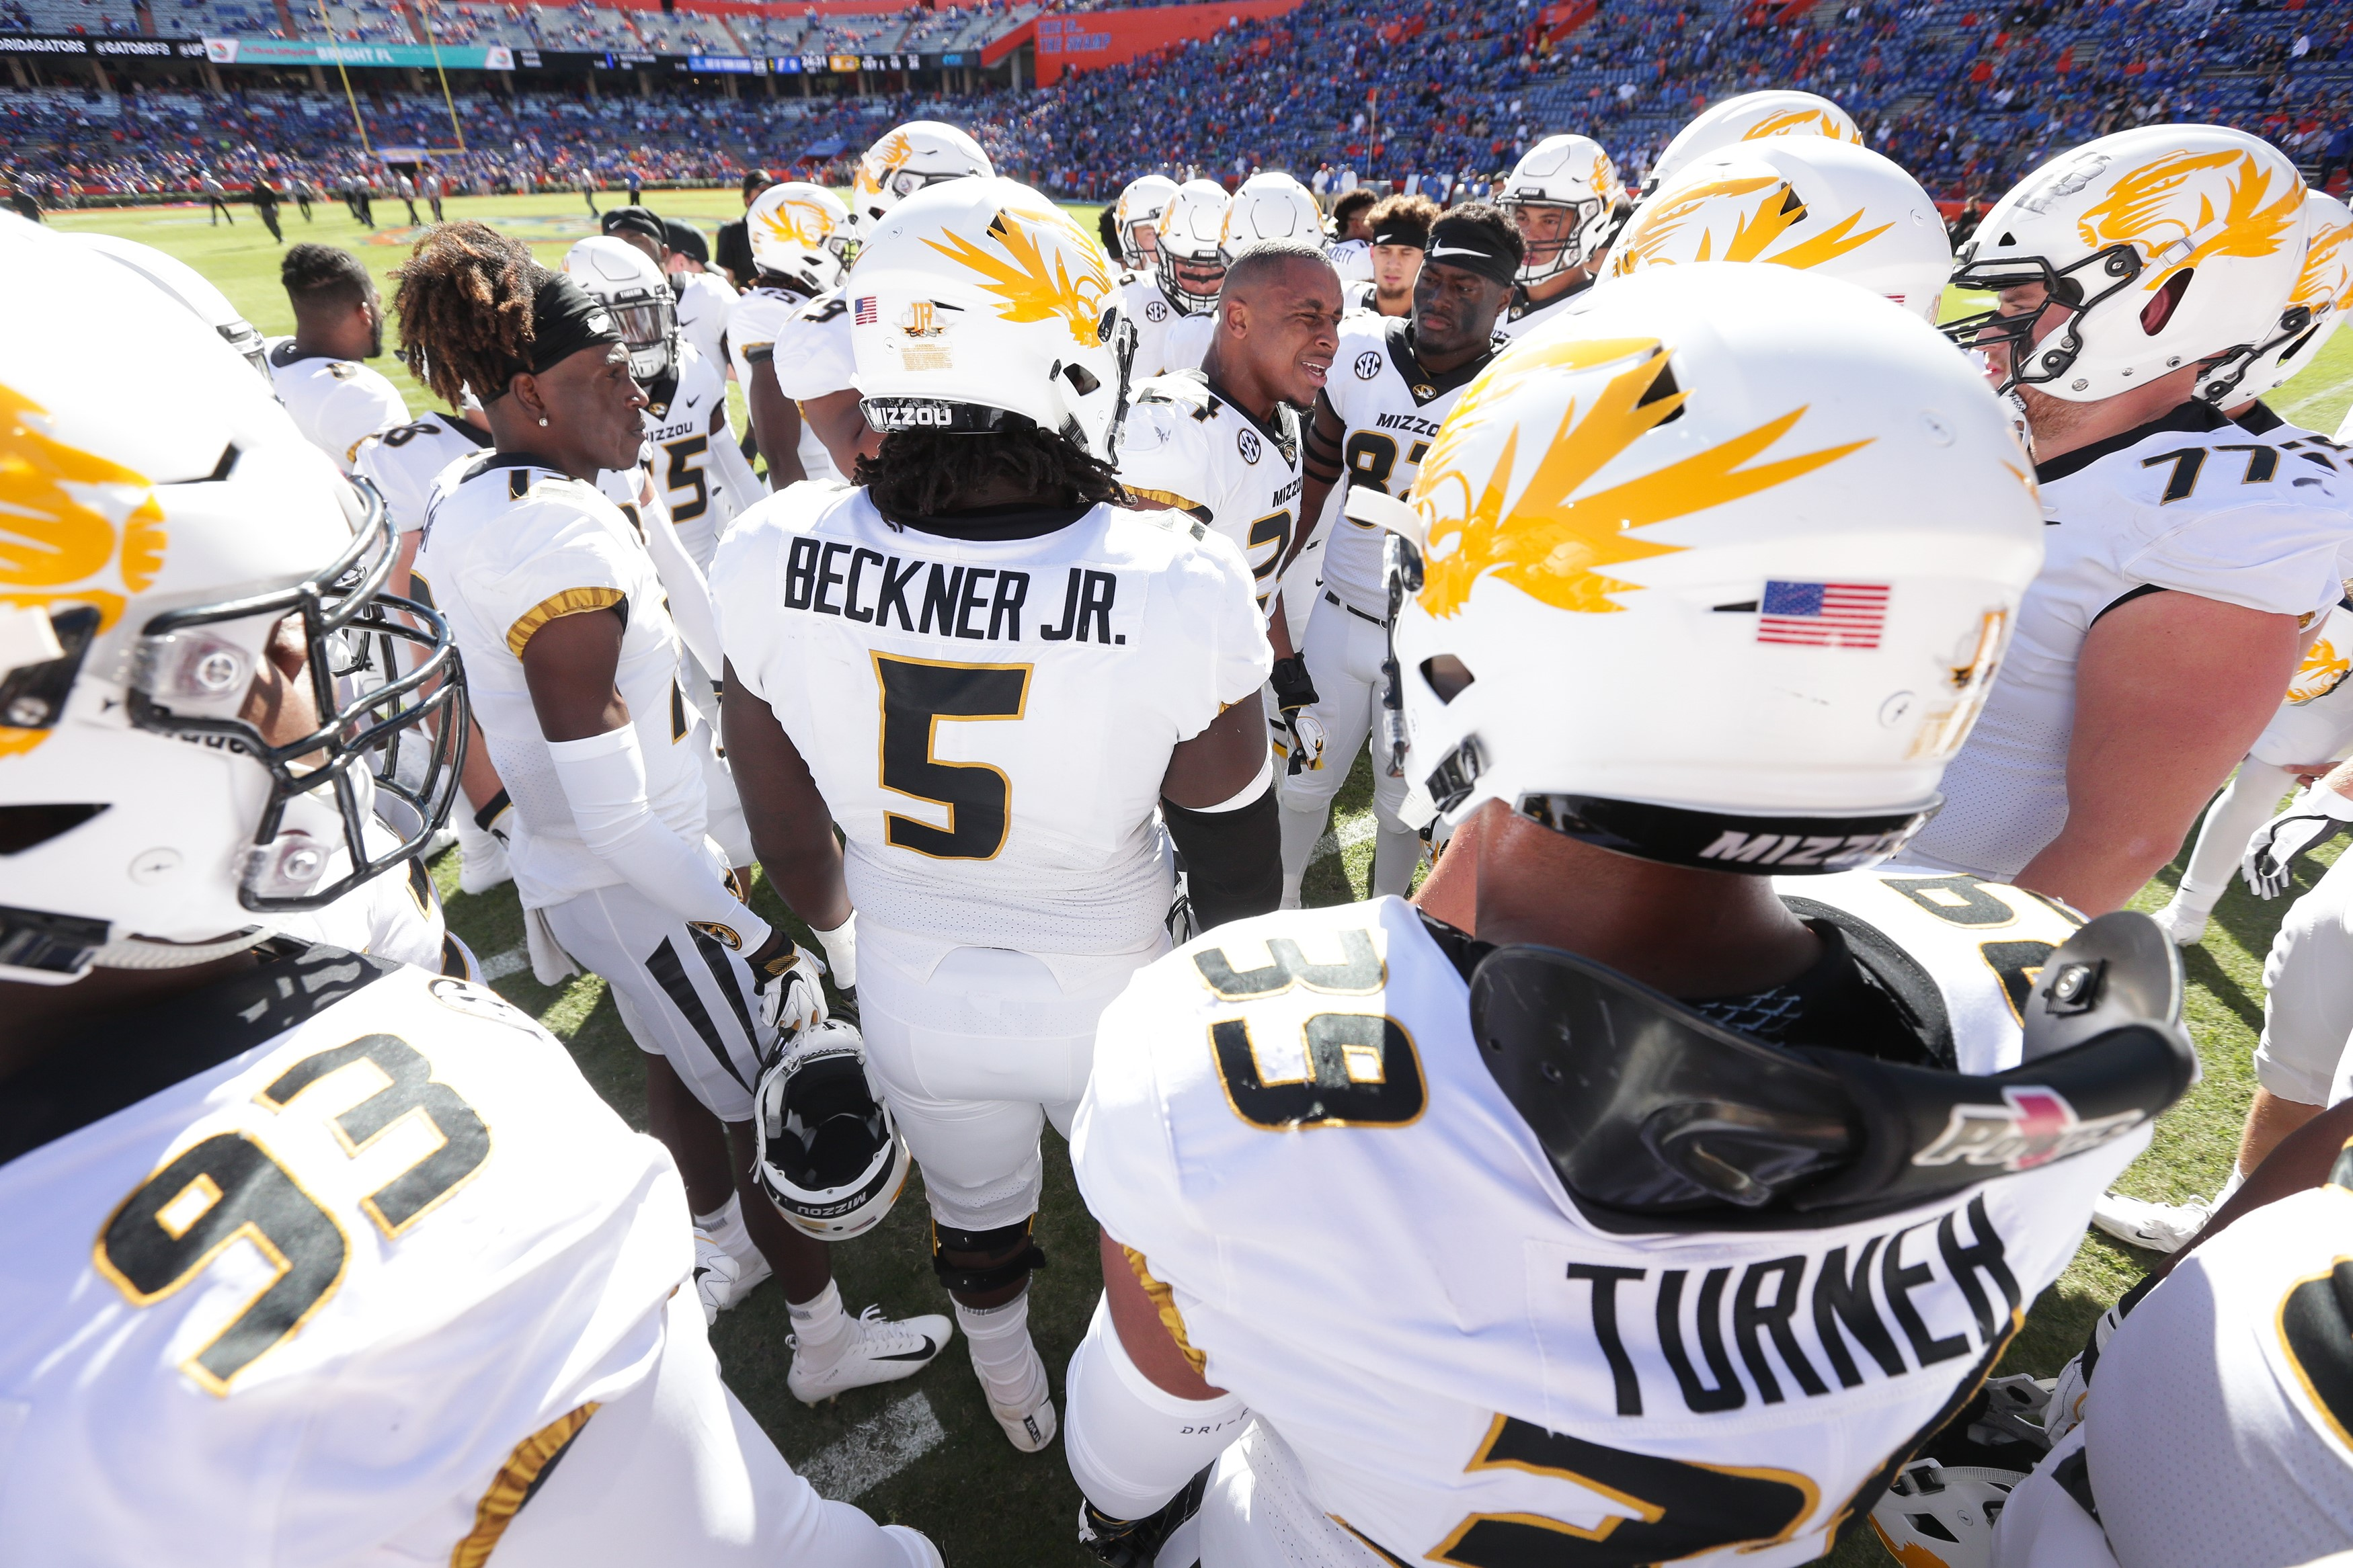 new product 32afe 3d036 Bowl Eligibility Within Grasp as Hosts Vanderbilt Saturday ...